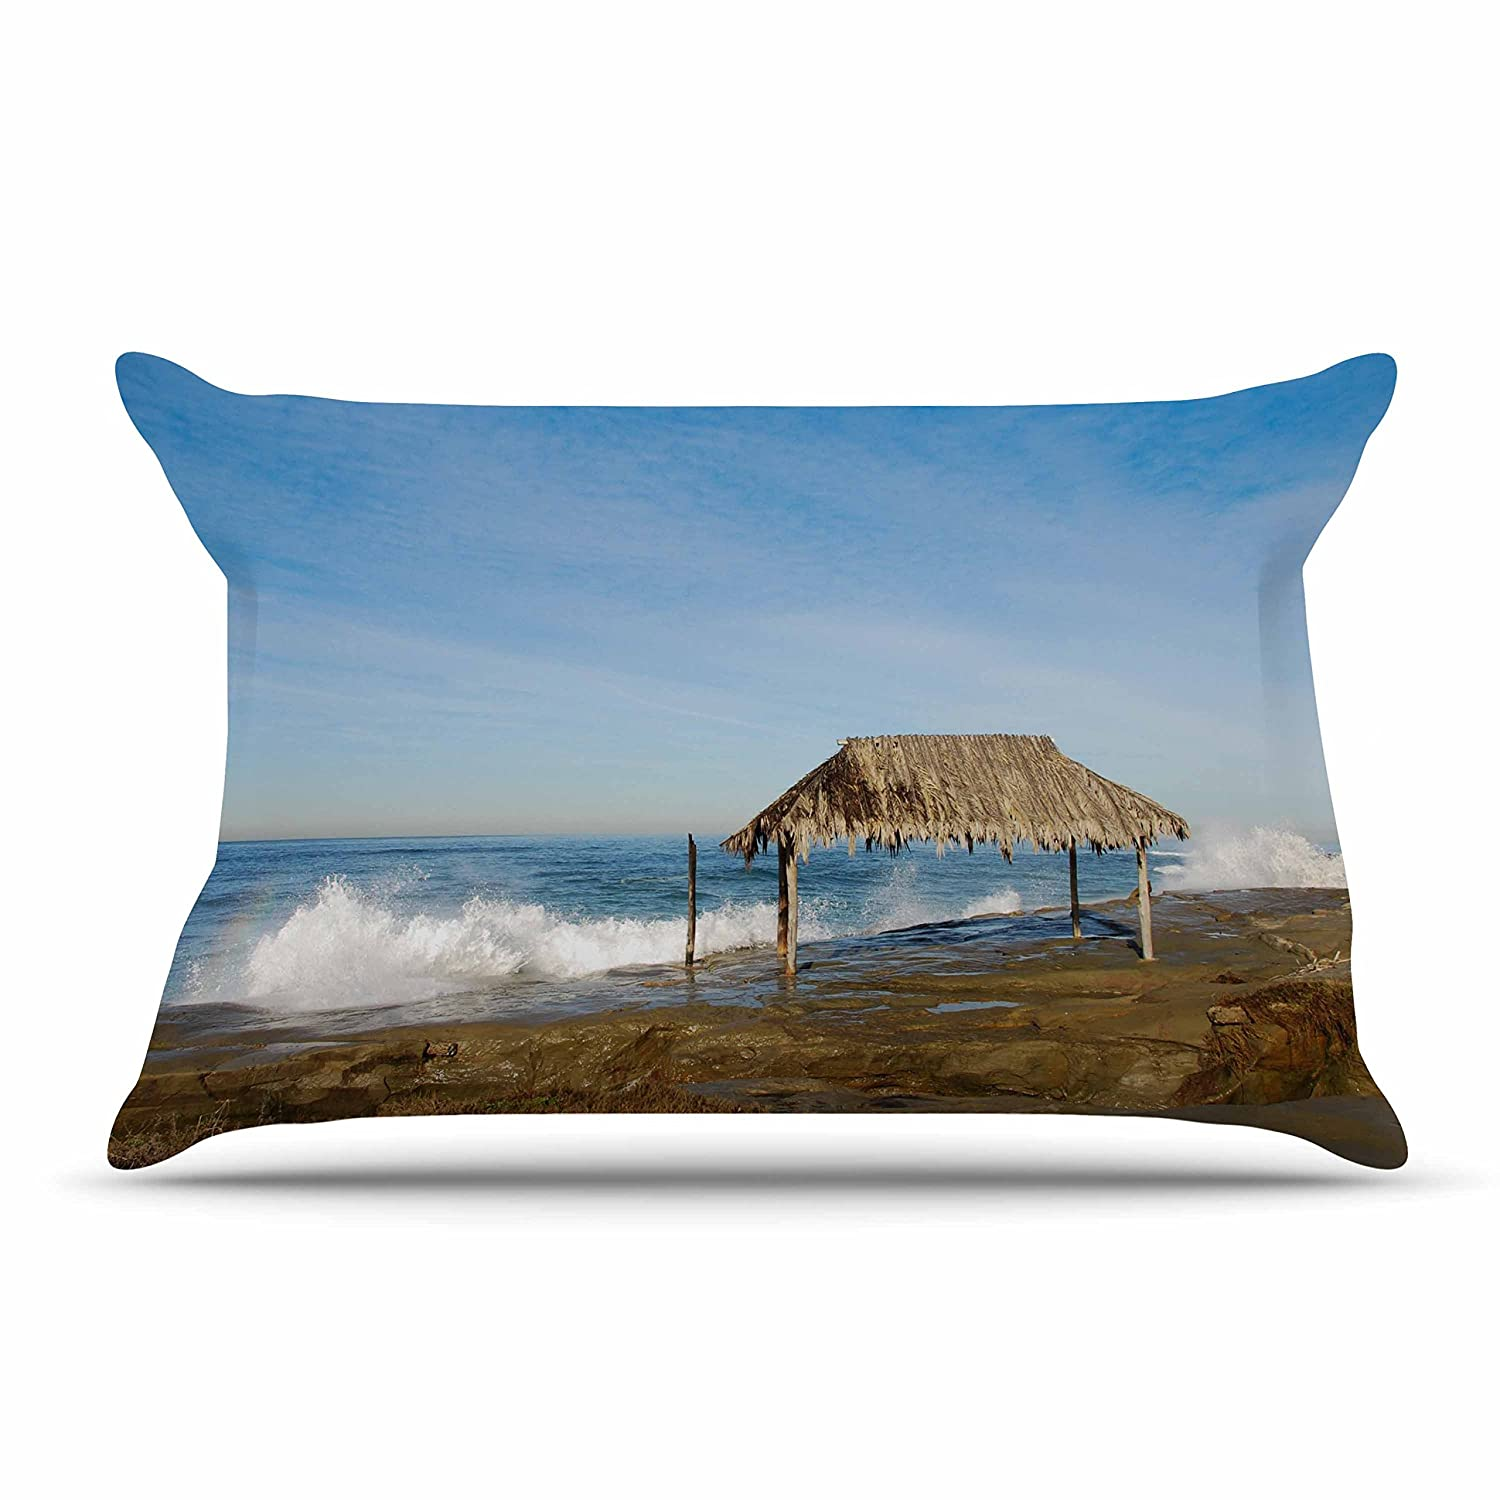 40 x 20 Kess InHouse Nick Nareshni Crashing Waves Near Hut Blue Tan Pillow Sham